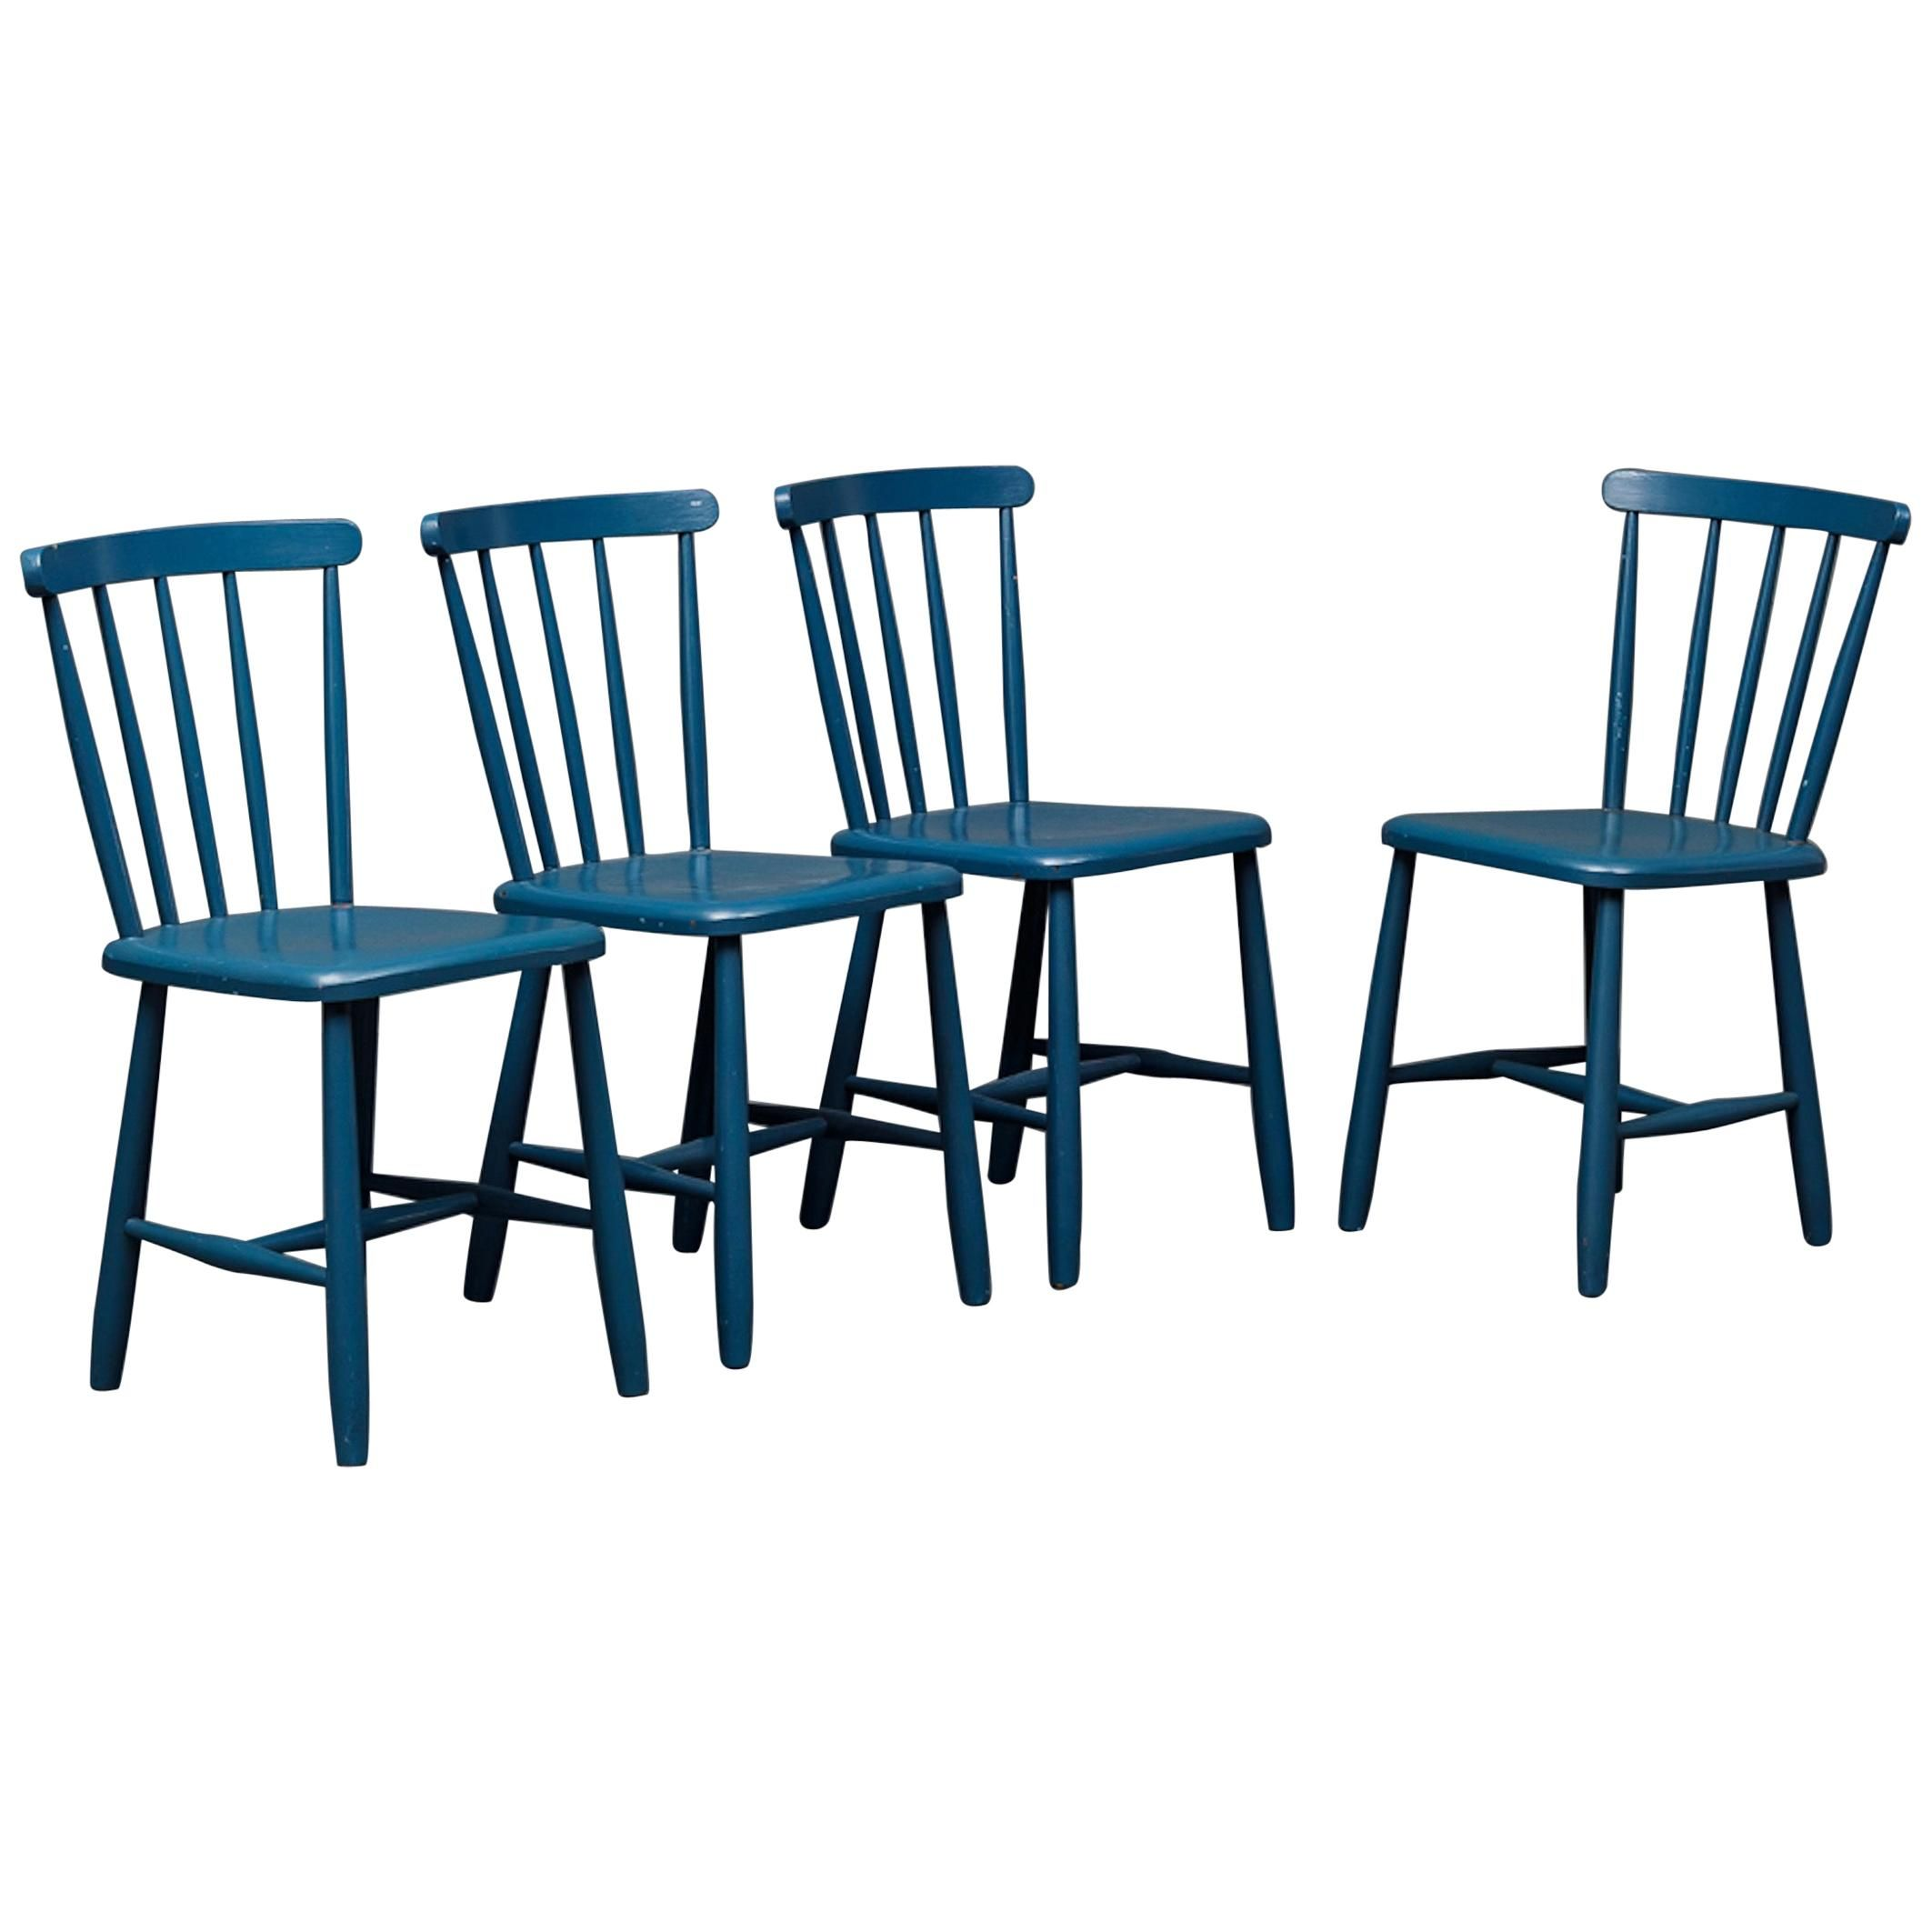 Set Of 4 Blue Painted Dining Chairs Kitchen Chair Wood For Sale At